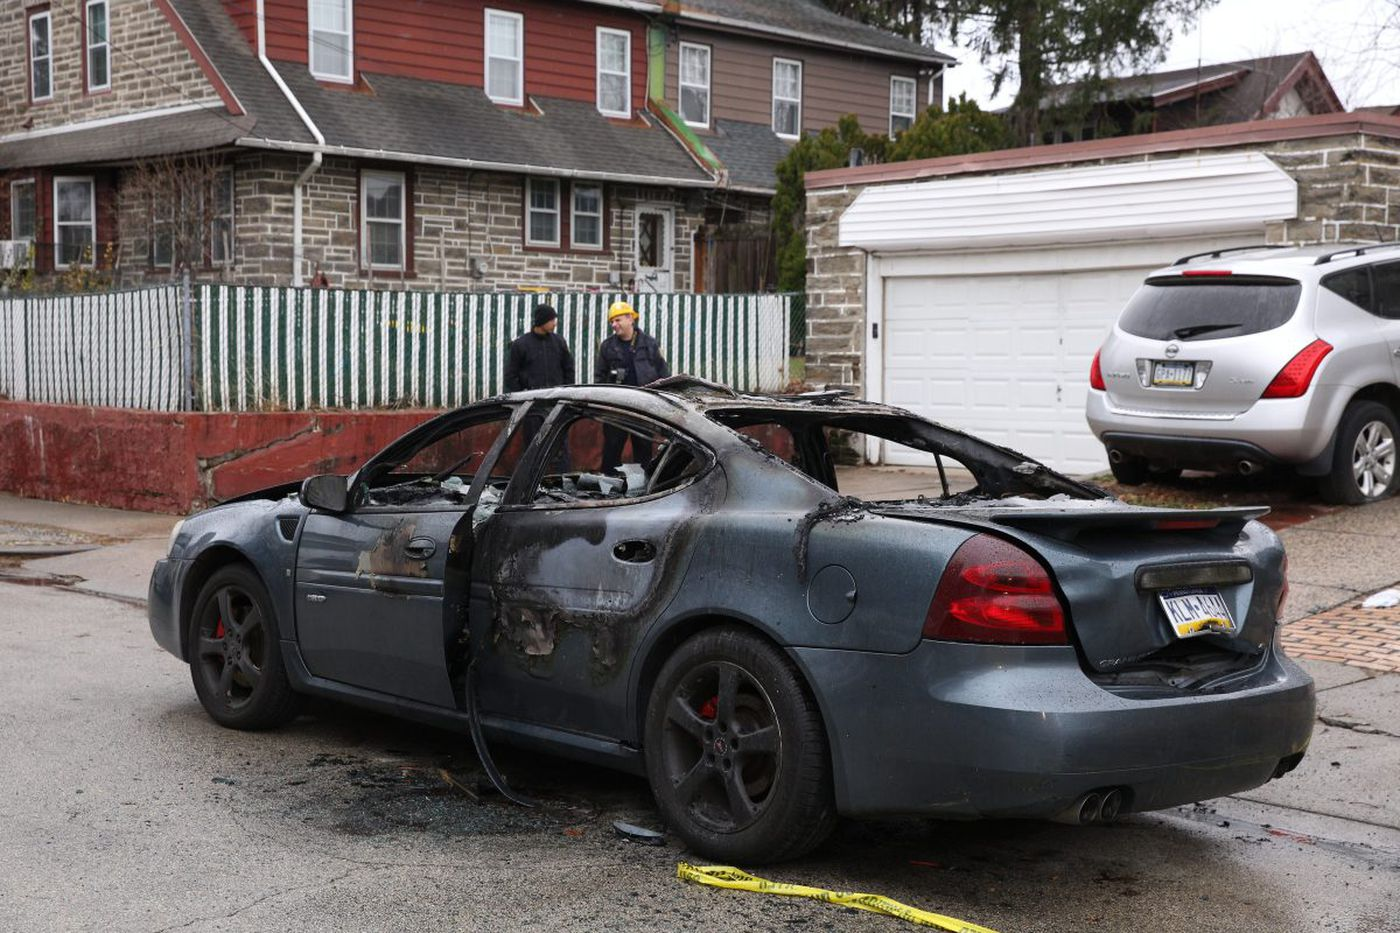 Man abducted, bound, set afire in car, Philadelphia police say